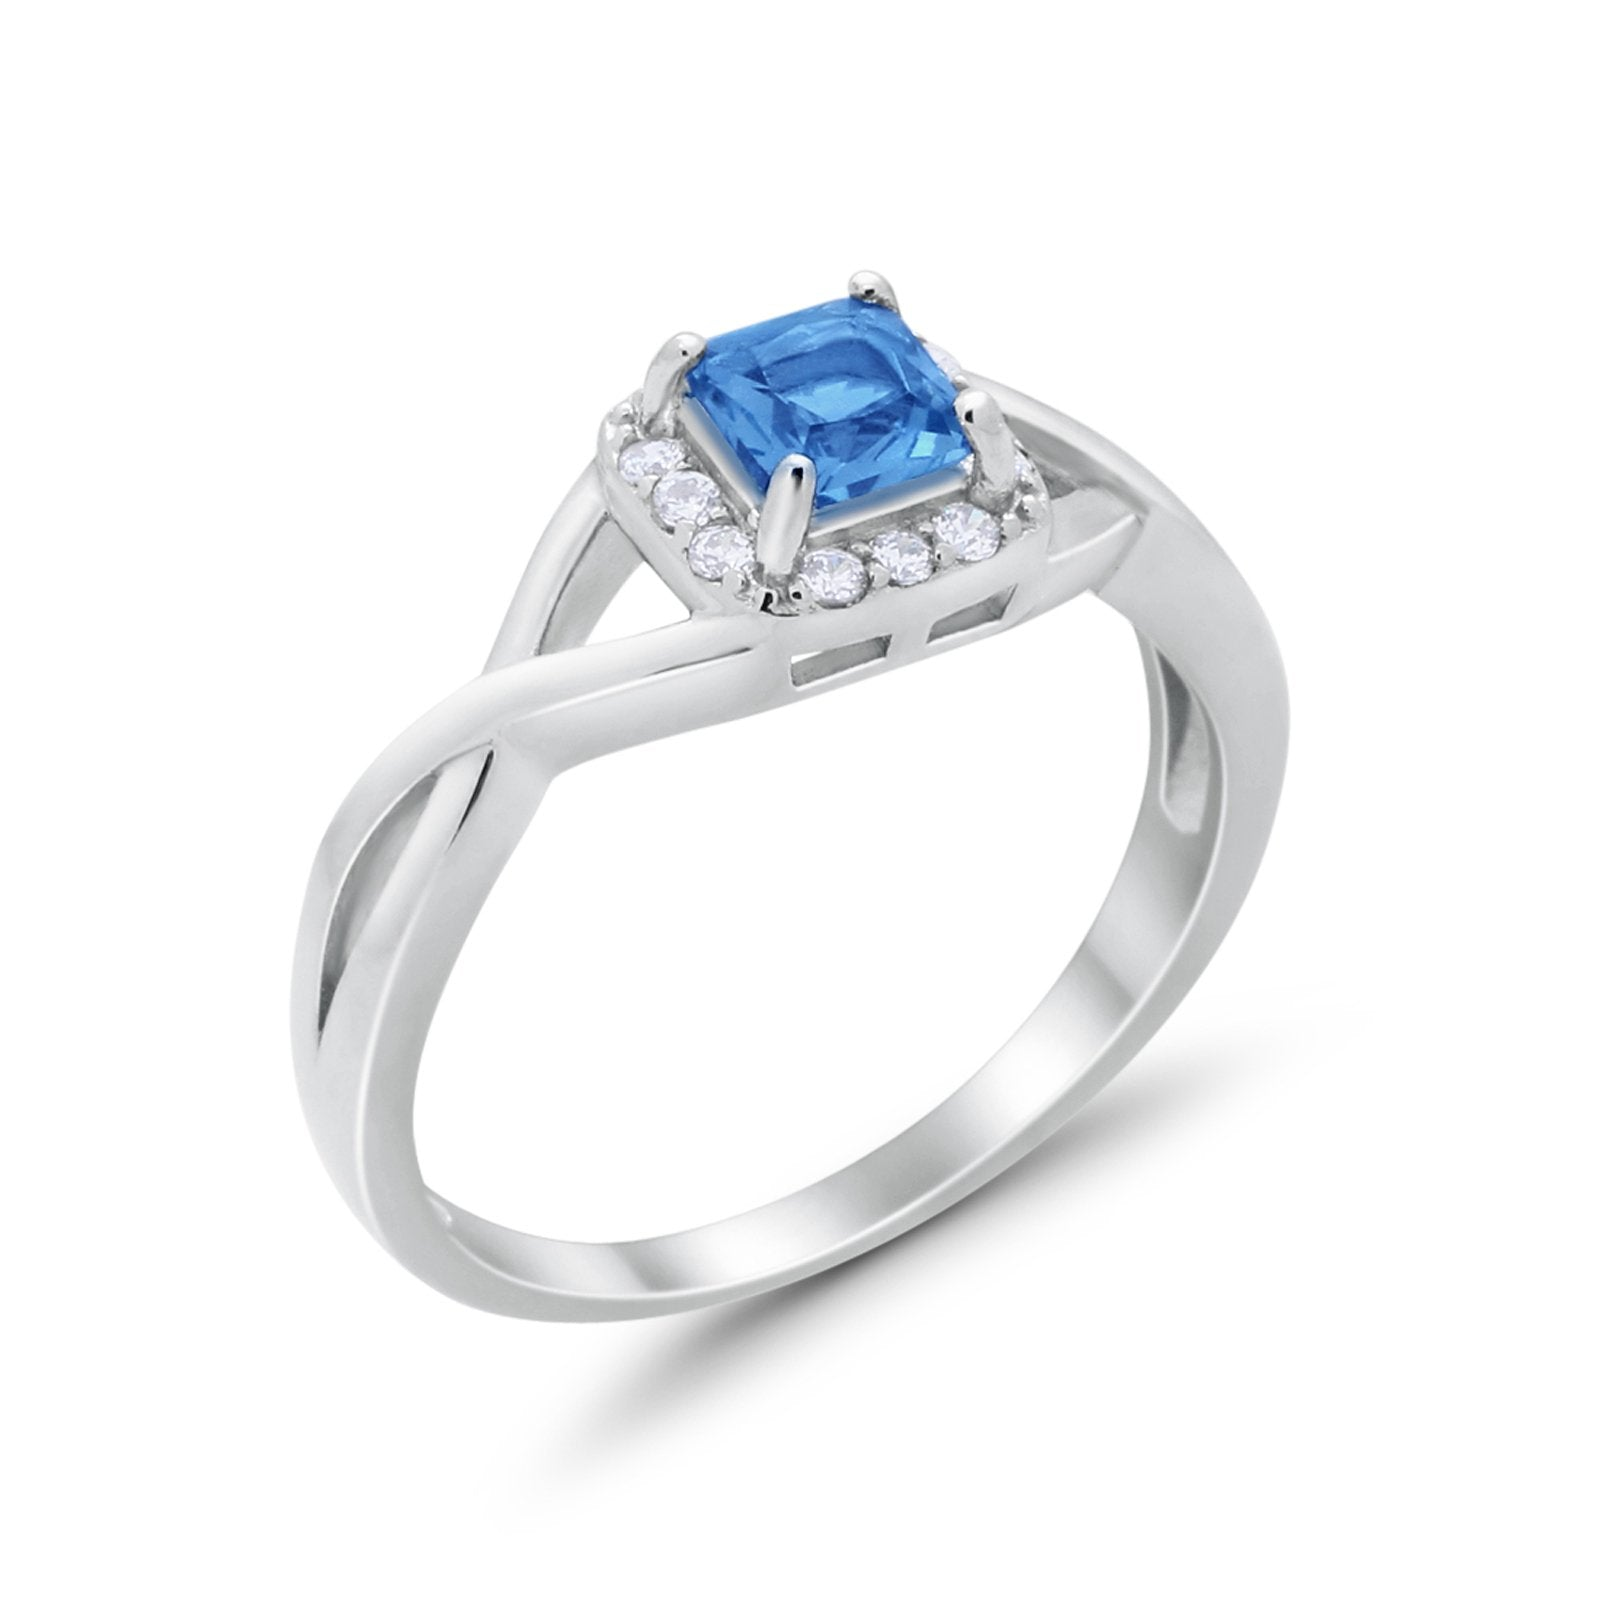 Solitaire Infinity Shank Ring Princess Cut Simulated Blue Topaz CZ 925 Sterling Silver